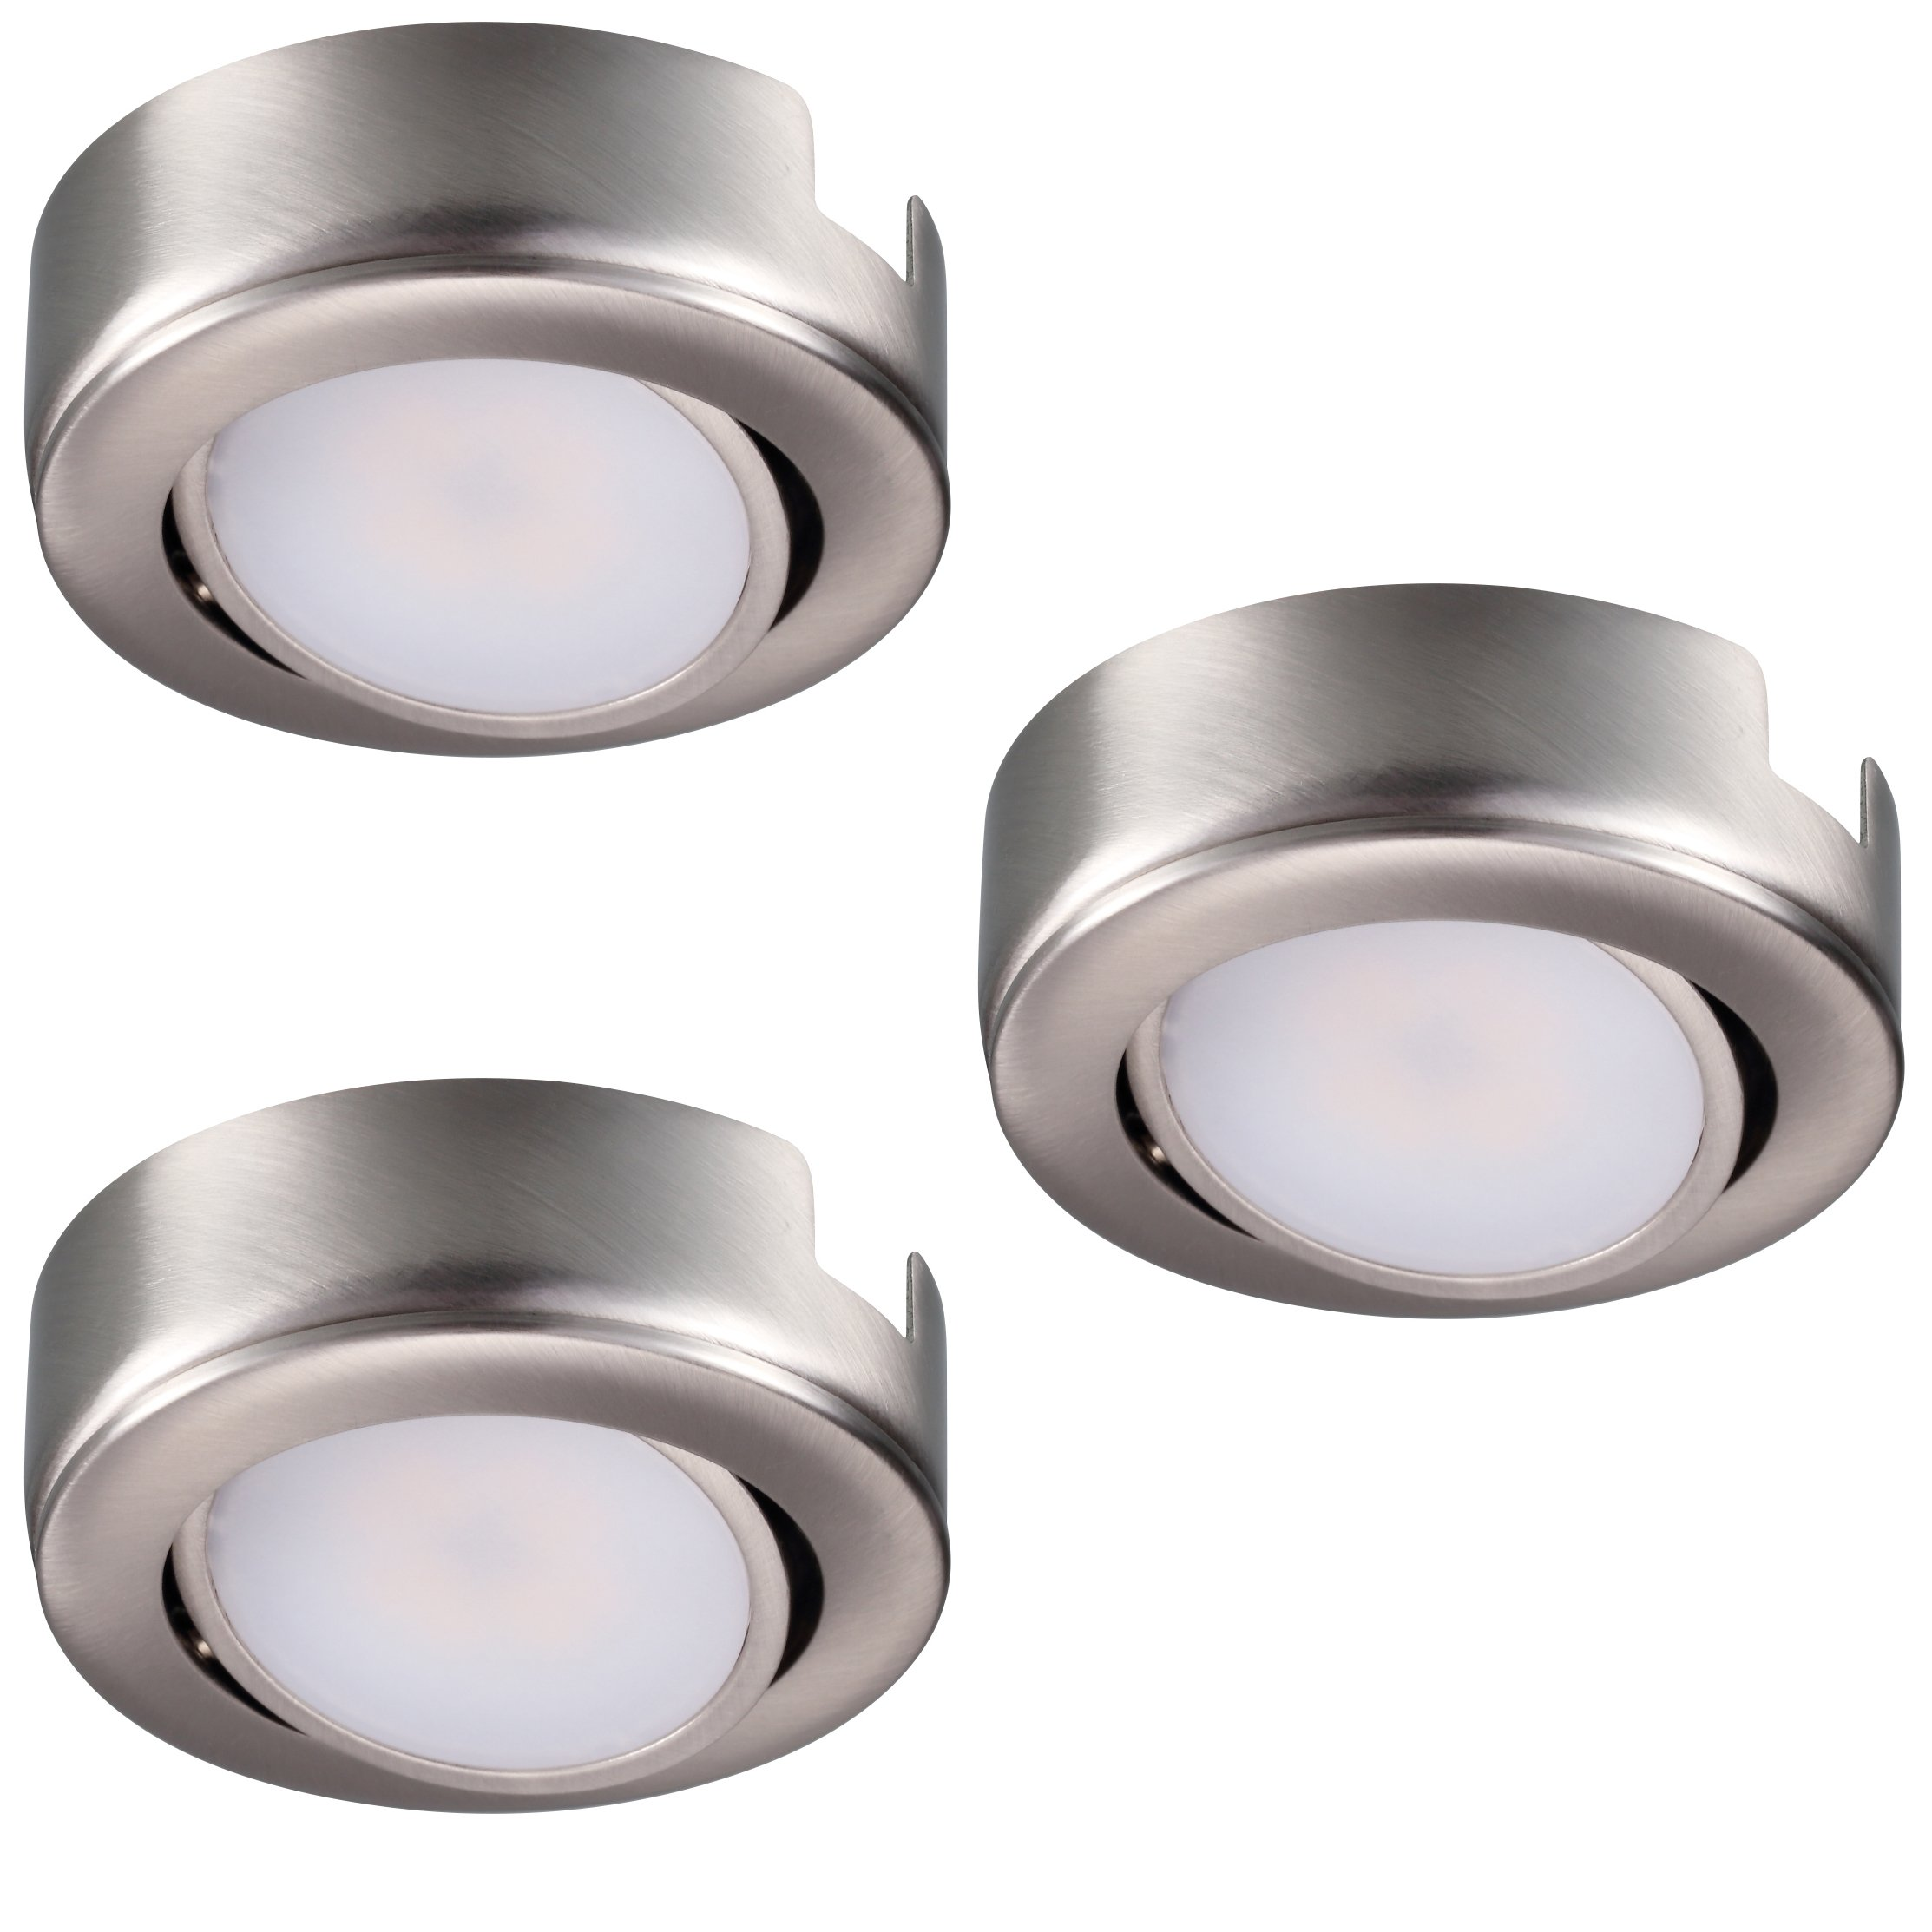 GetInLight Dimmable and Swivel, LED Puck Light Kit with ETL List, Recessed or Surface Mount Design, Warm White 2700K, Brushed Nickel Finish, (Pack of 3), IN-0107-3-SN